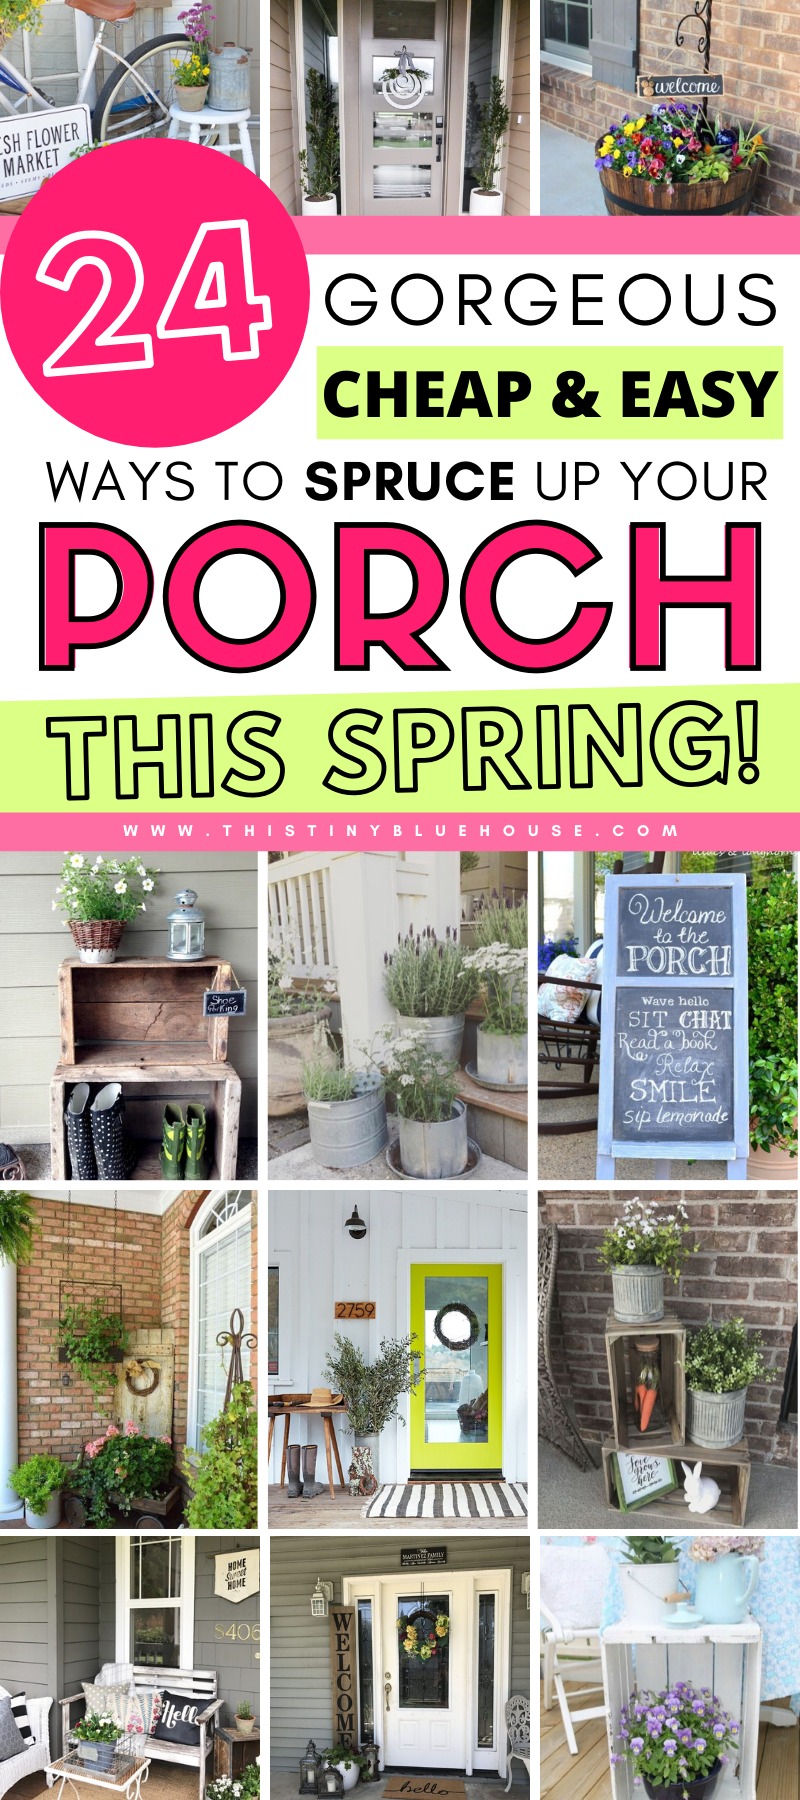 14 Stunning DIY Spring Porch Ideas in 14  Spring diy, Spring